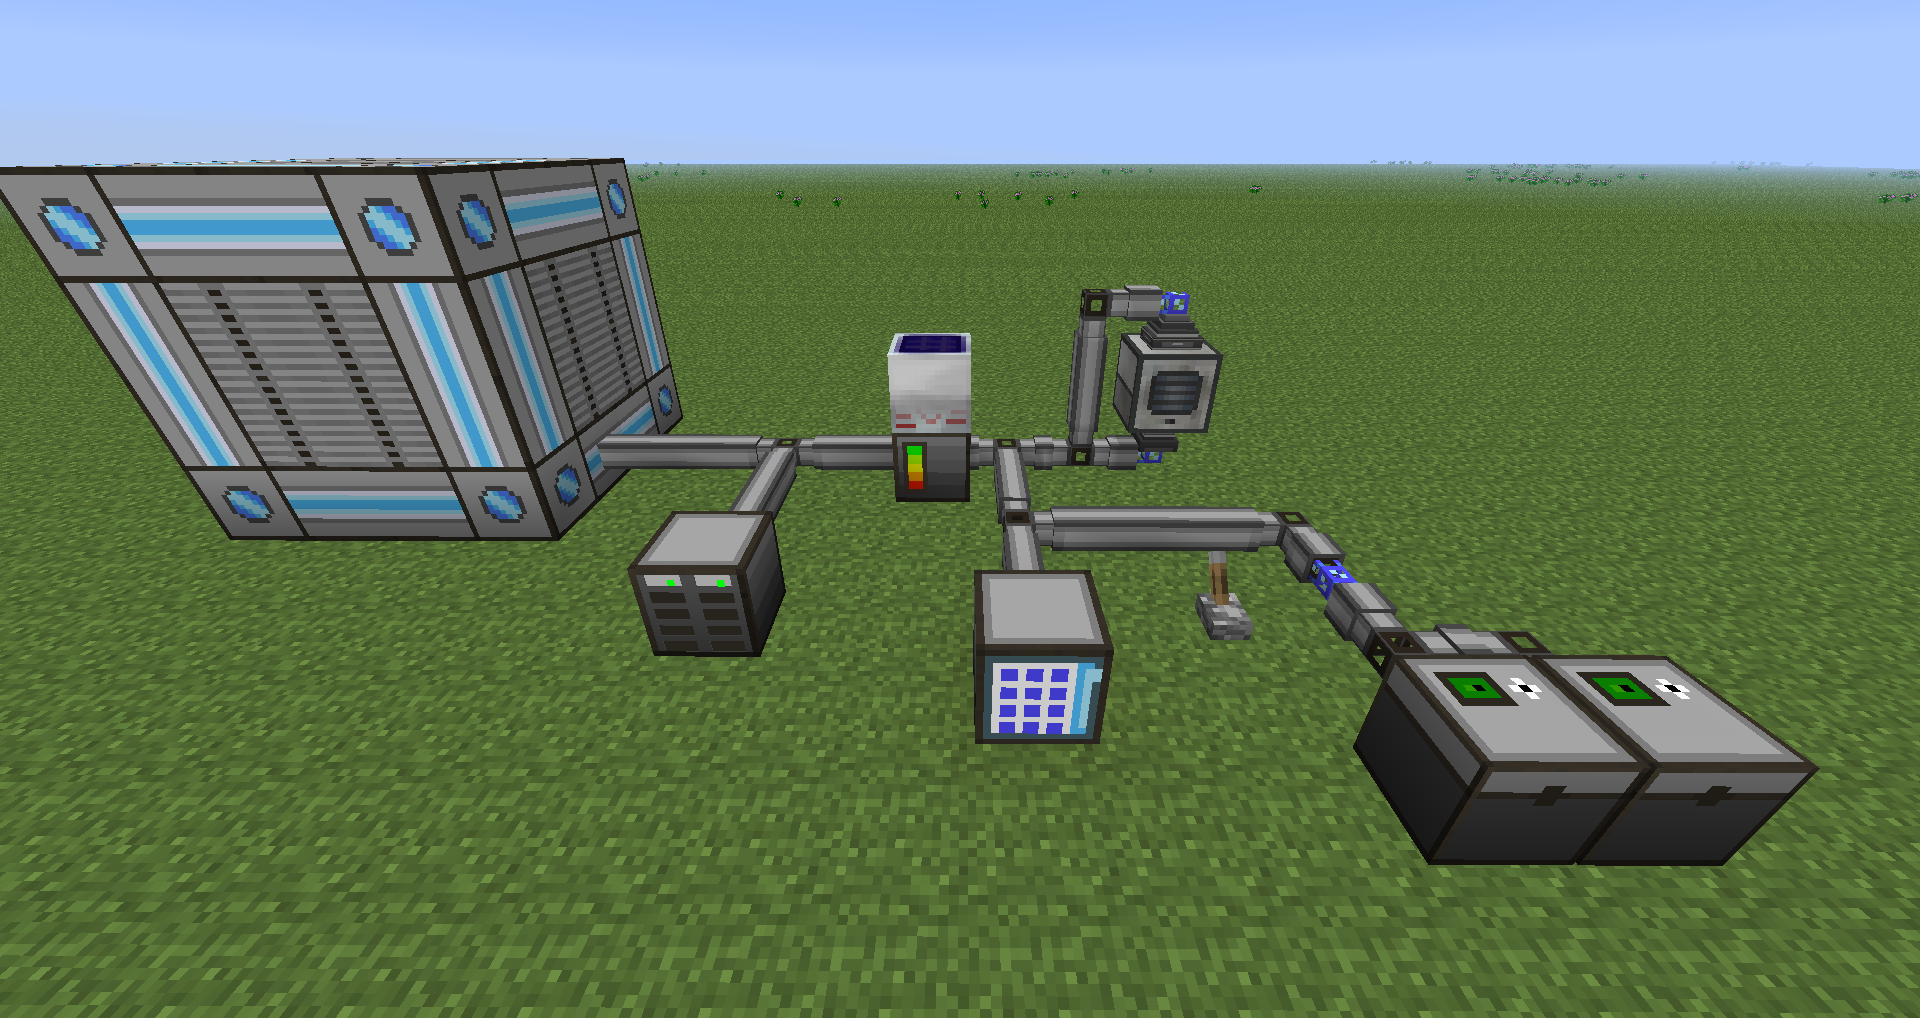 Minecraft Applied Energistics  One Room Is Every Room